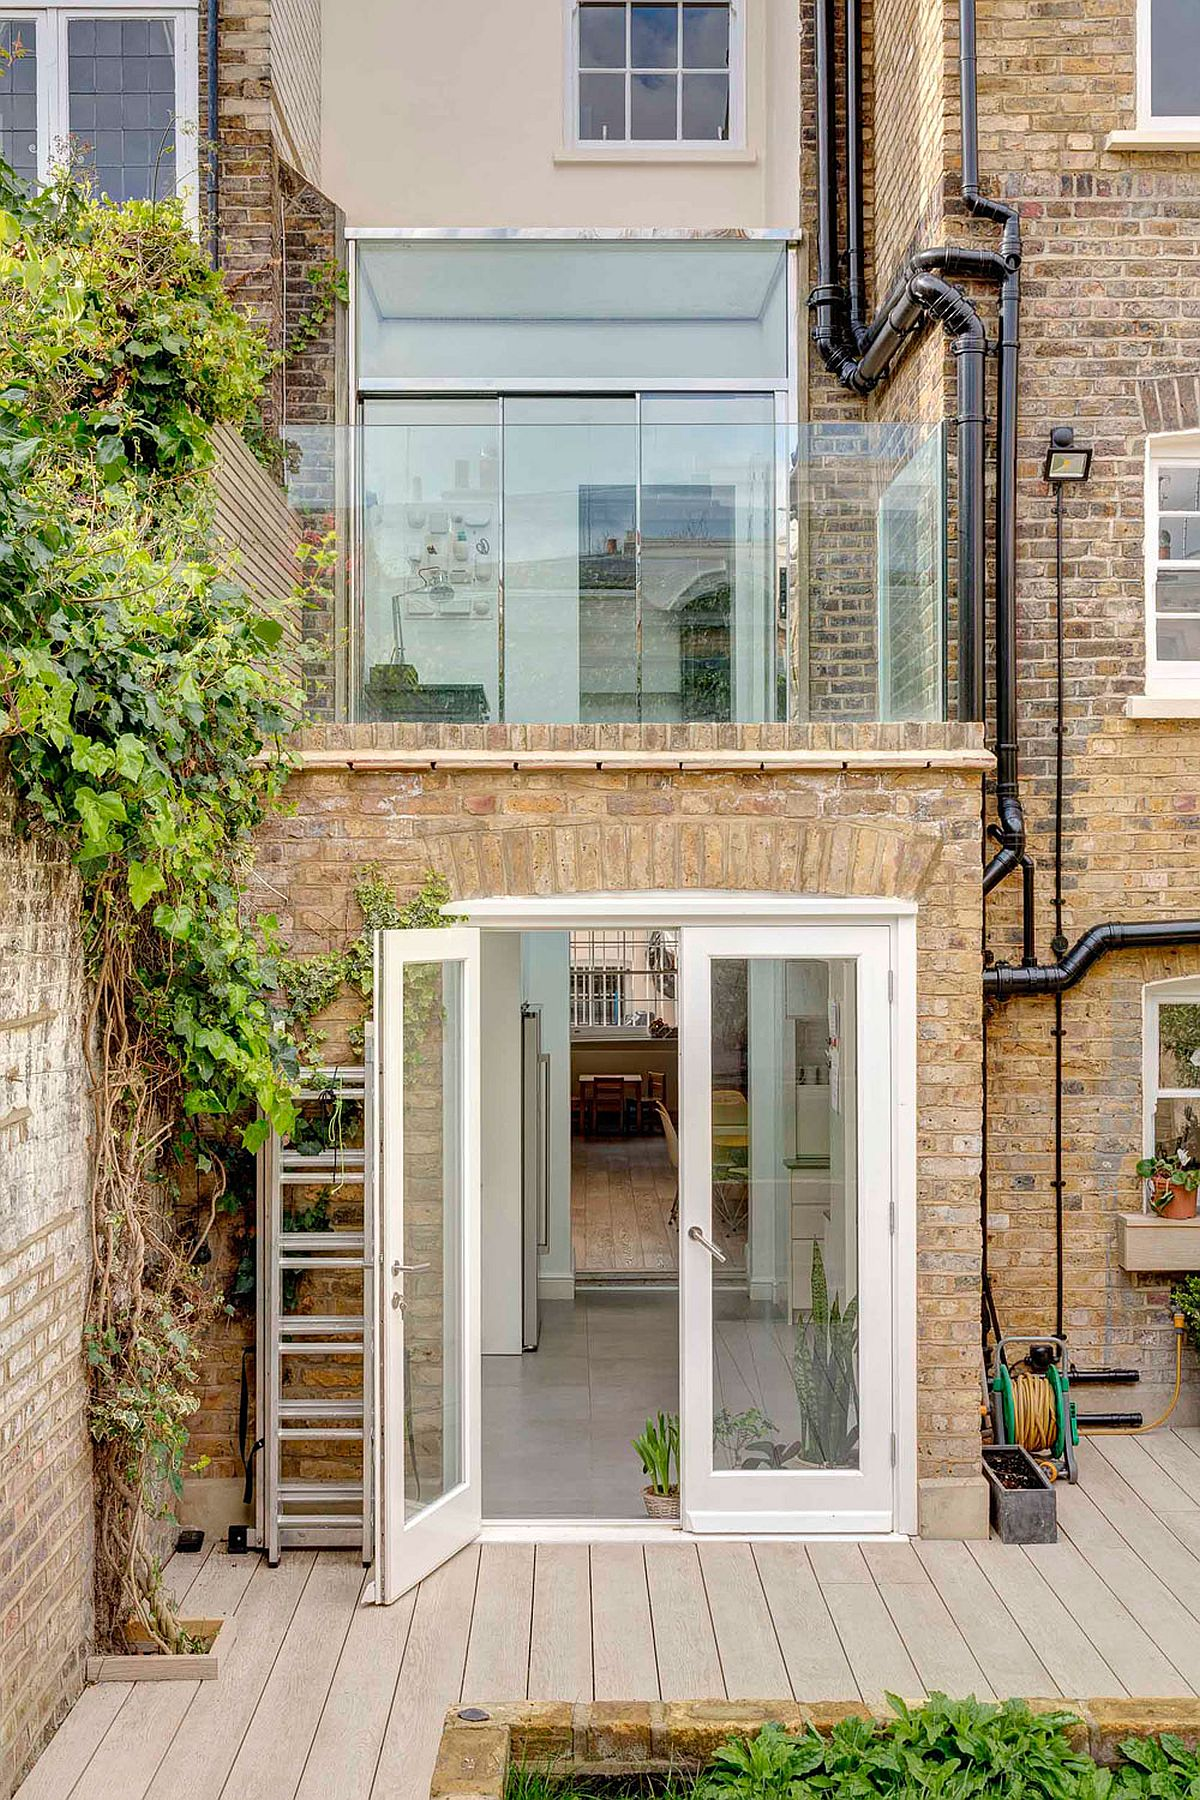 Modern extension to Grade II Listed House in Westminster Nifty Extension with Walk On Skylights Enlivens This Terrace House